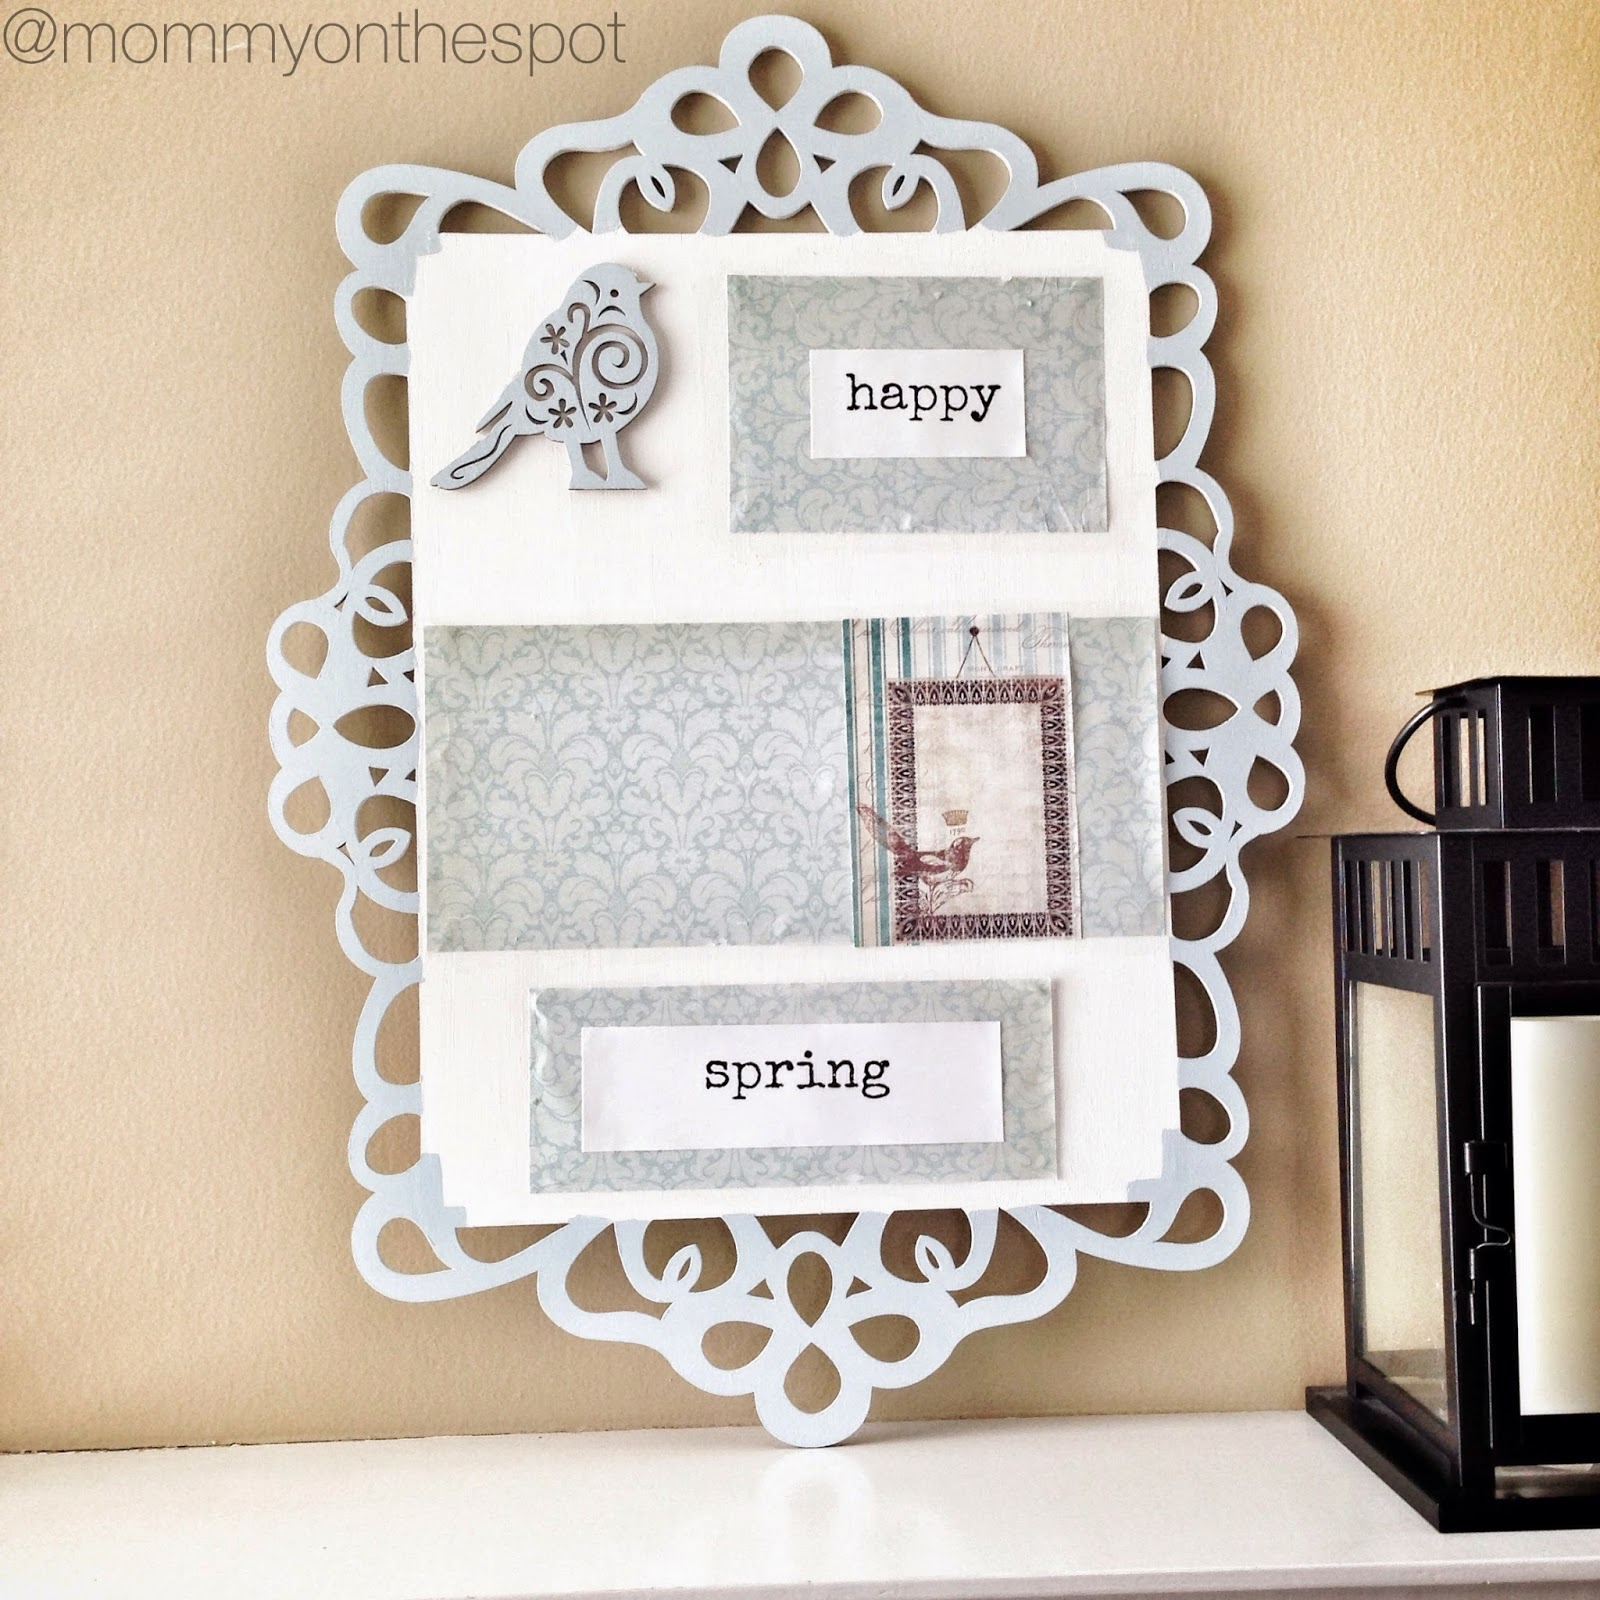 Erin Janda Rawlings Mommy on the Spot Art Therapy Spring Laser Wood Craft with Chalk Paint